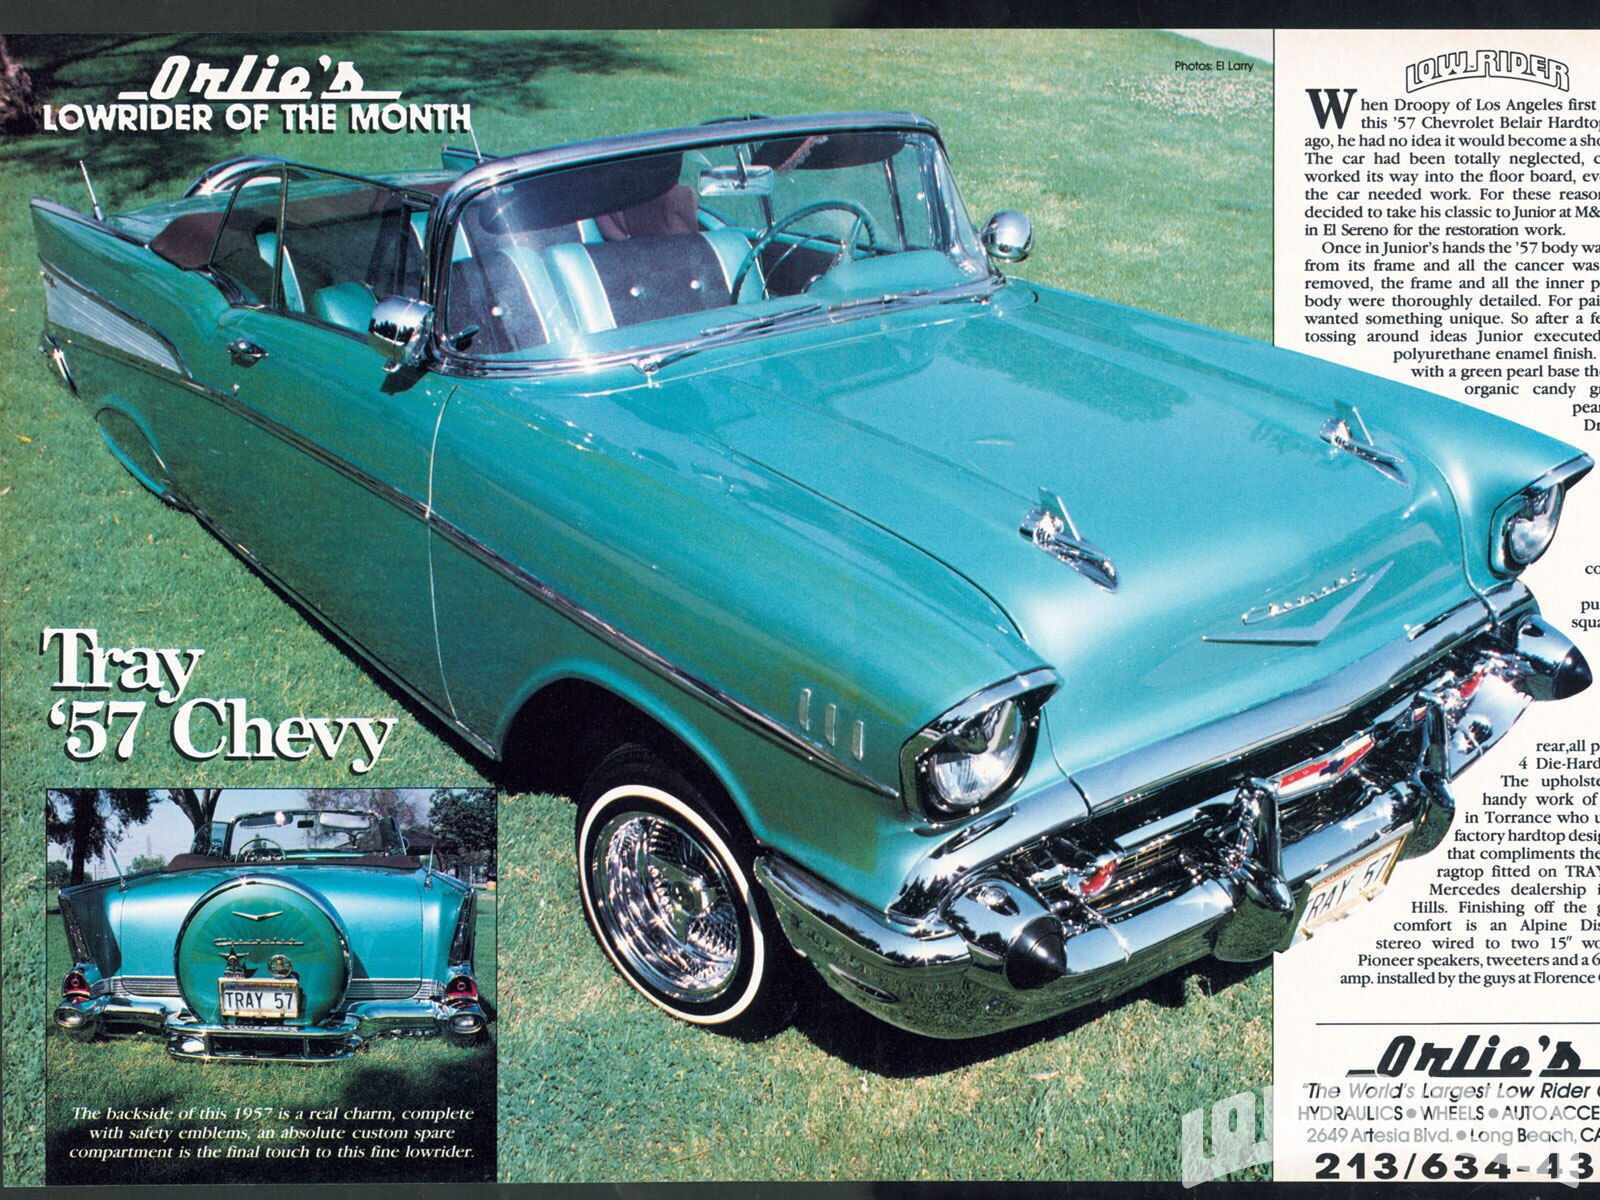 1203-lrmp-57-o-lowrider-magazine-1985-1988-lowrider-archives1